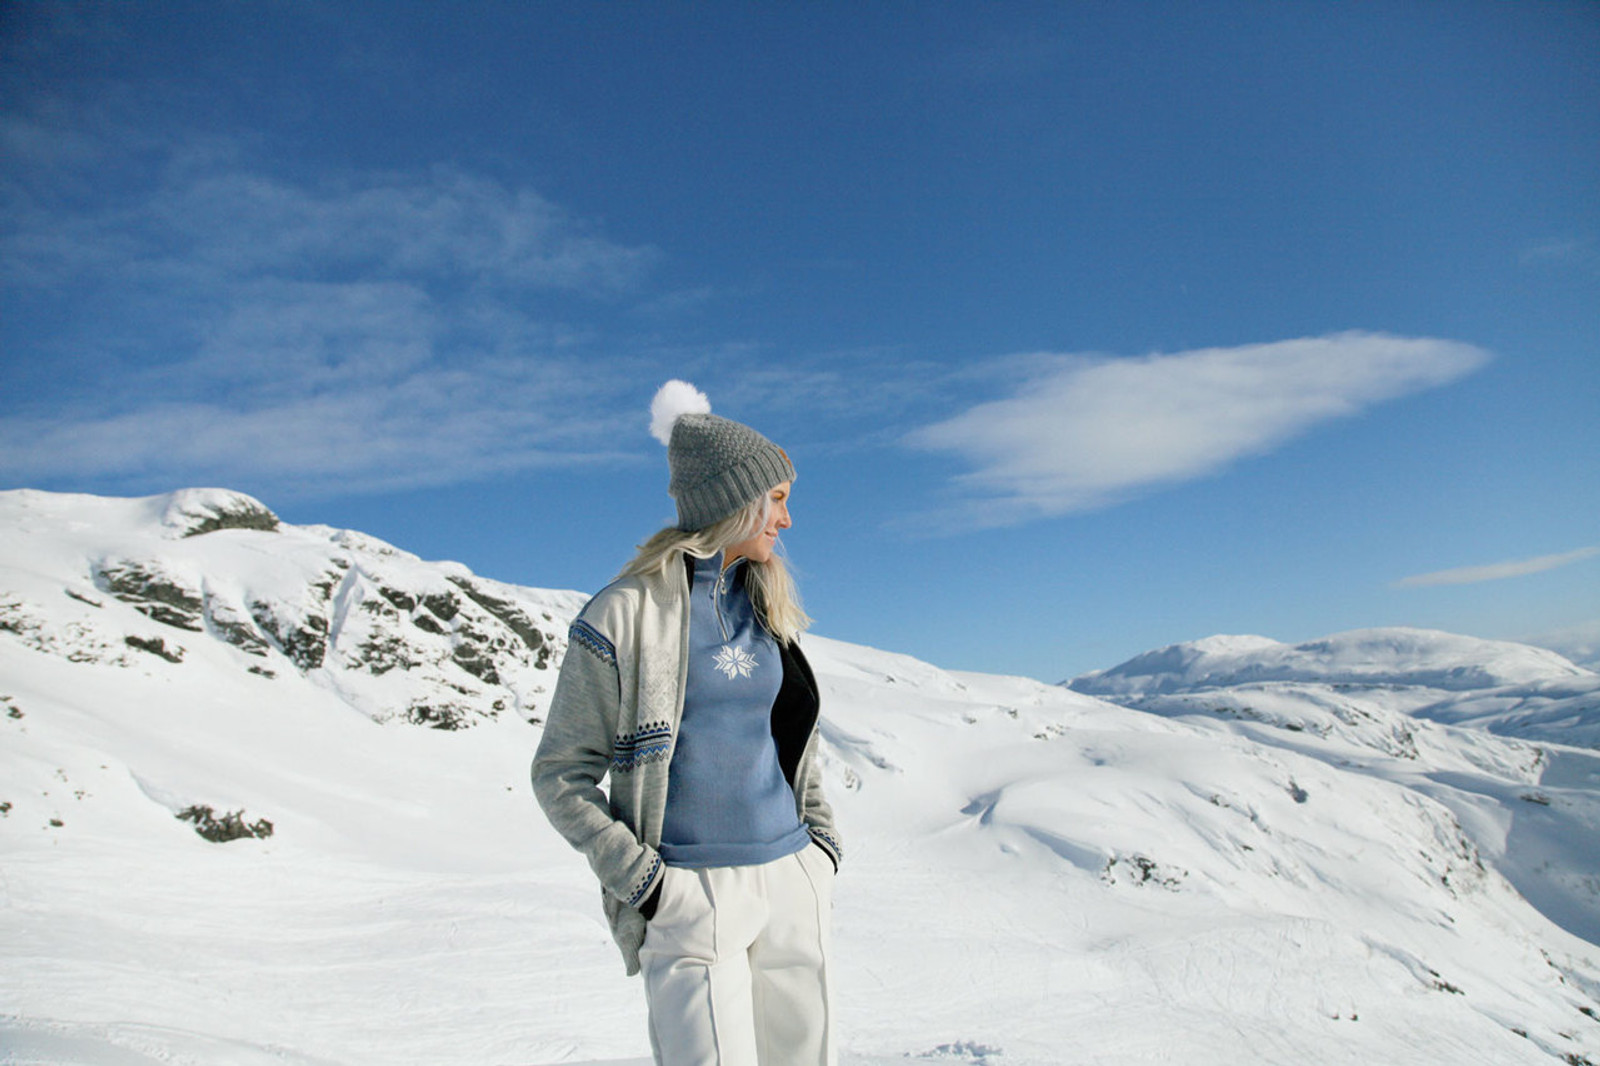 Woman wearing Dale of Norway's Glittertind ladies  windstopper jacket in  Light Charcoal/Navy/Cobalt/Off White, 83081-E, Geilo ladies pullover in  Blue Shadow/Off White, 82311-D, and Ulv ladies hat in Smoke, 48011-T